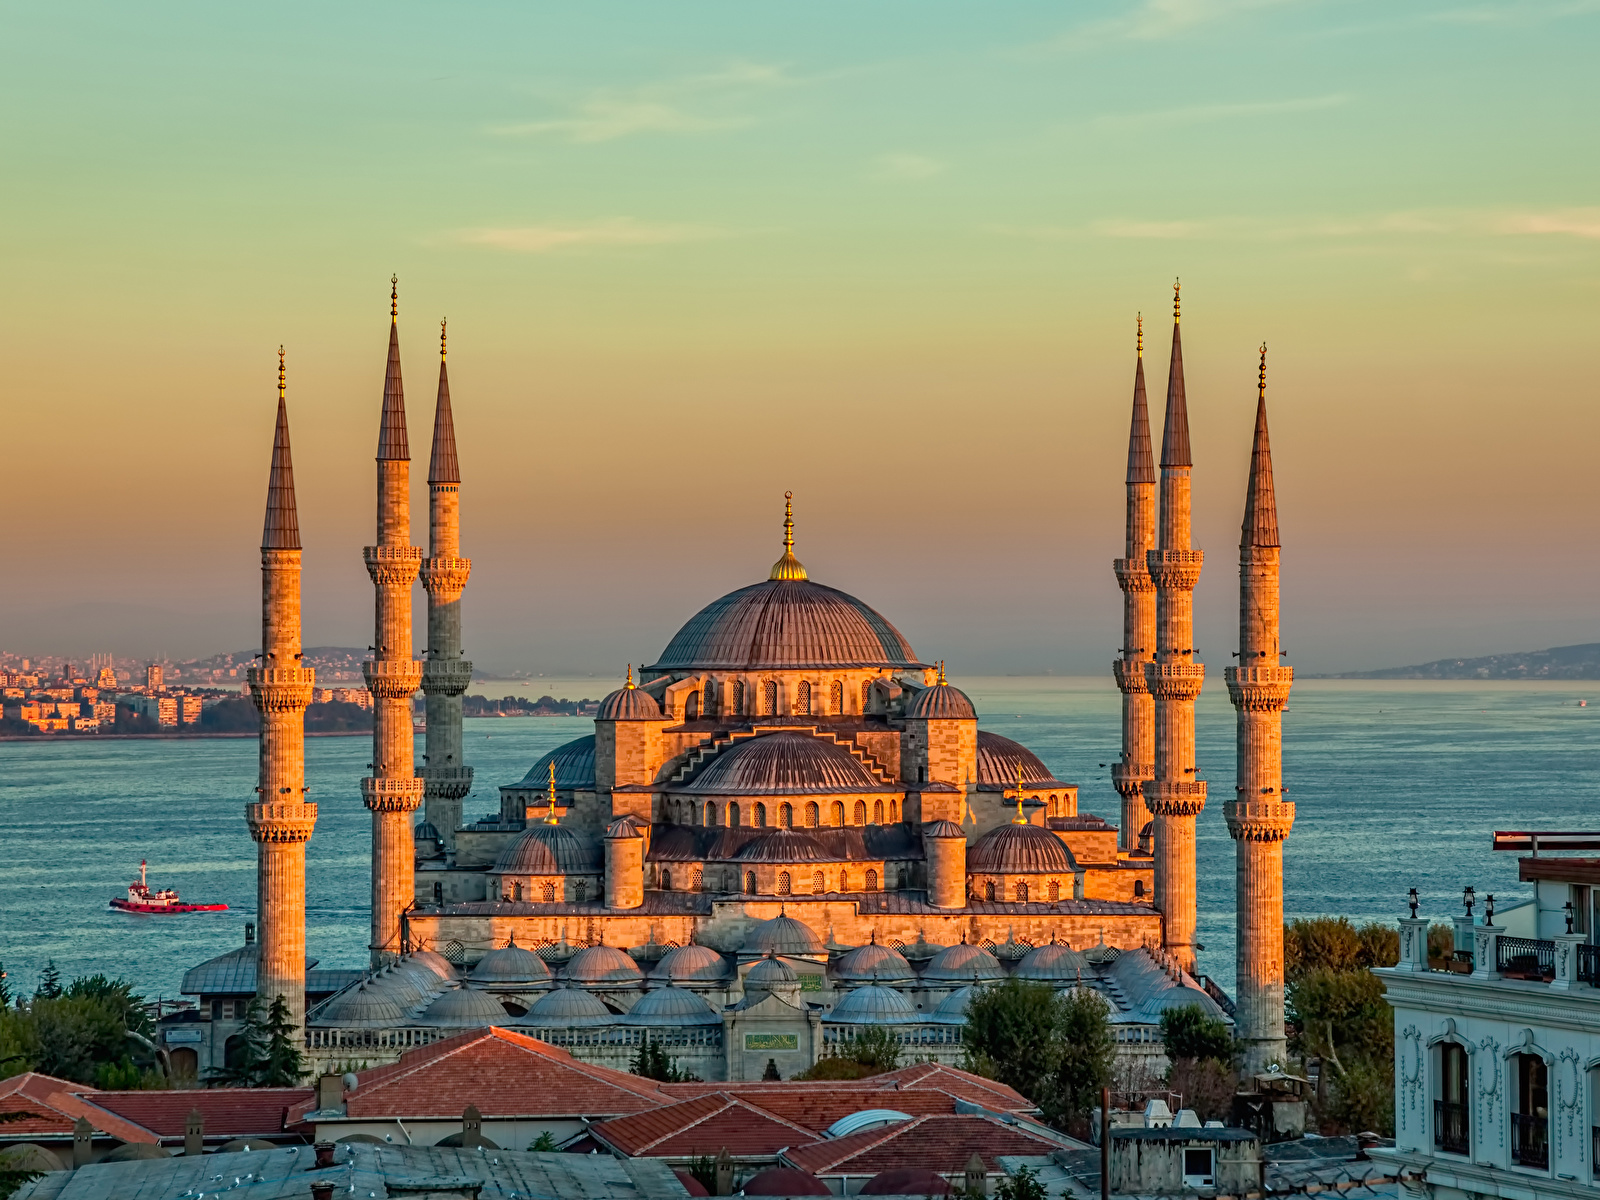 Istanbul_Turkey_Temples_Evening_Sultan_Ahmed_517571_1600x1200